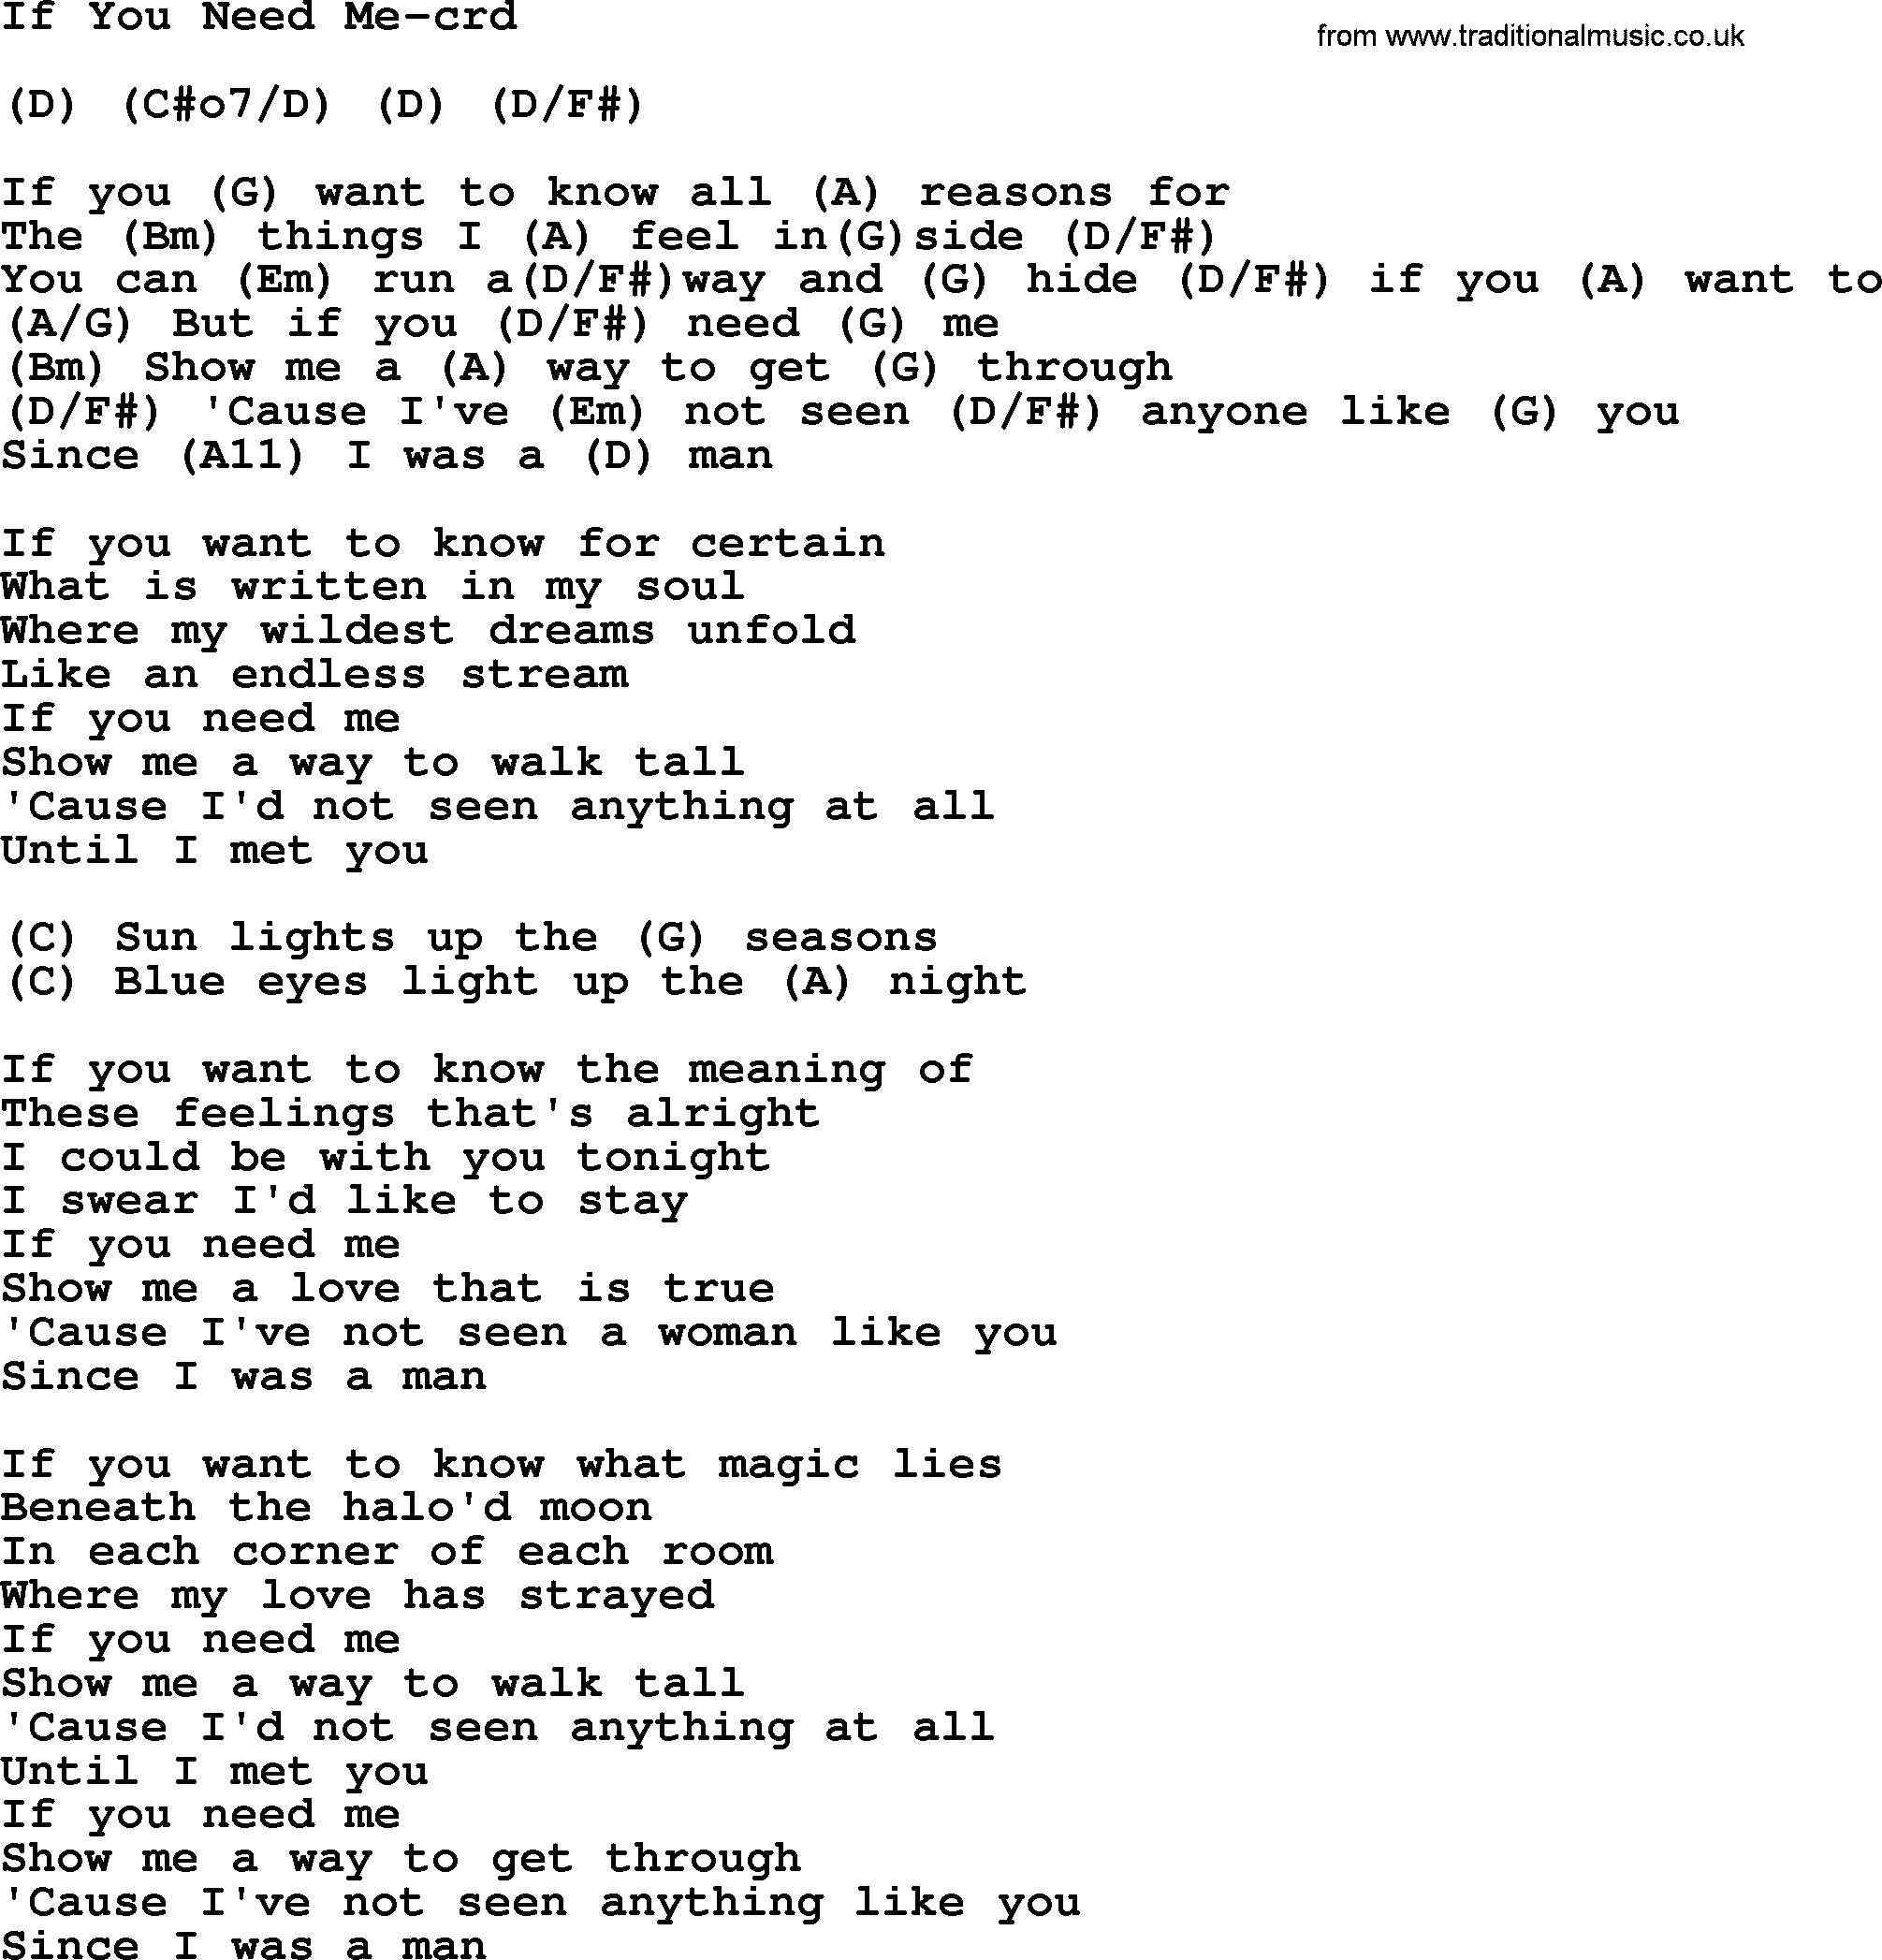 If you need me by gordon lightfoot lyrics and chords gordon lightfoot song if you need me lyrics and chords hexwebz Choice Image